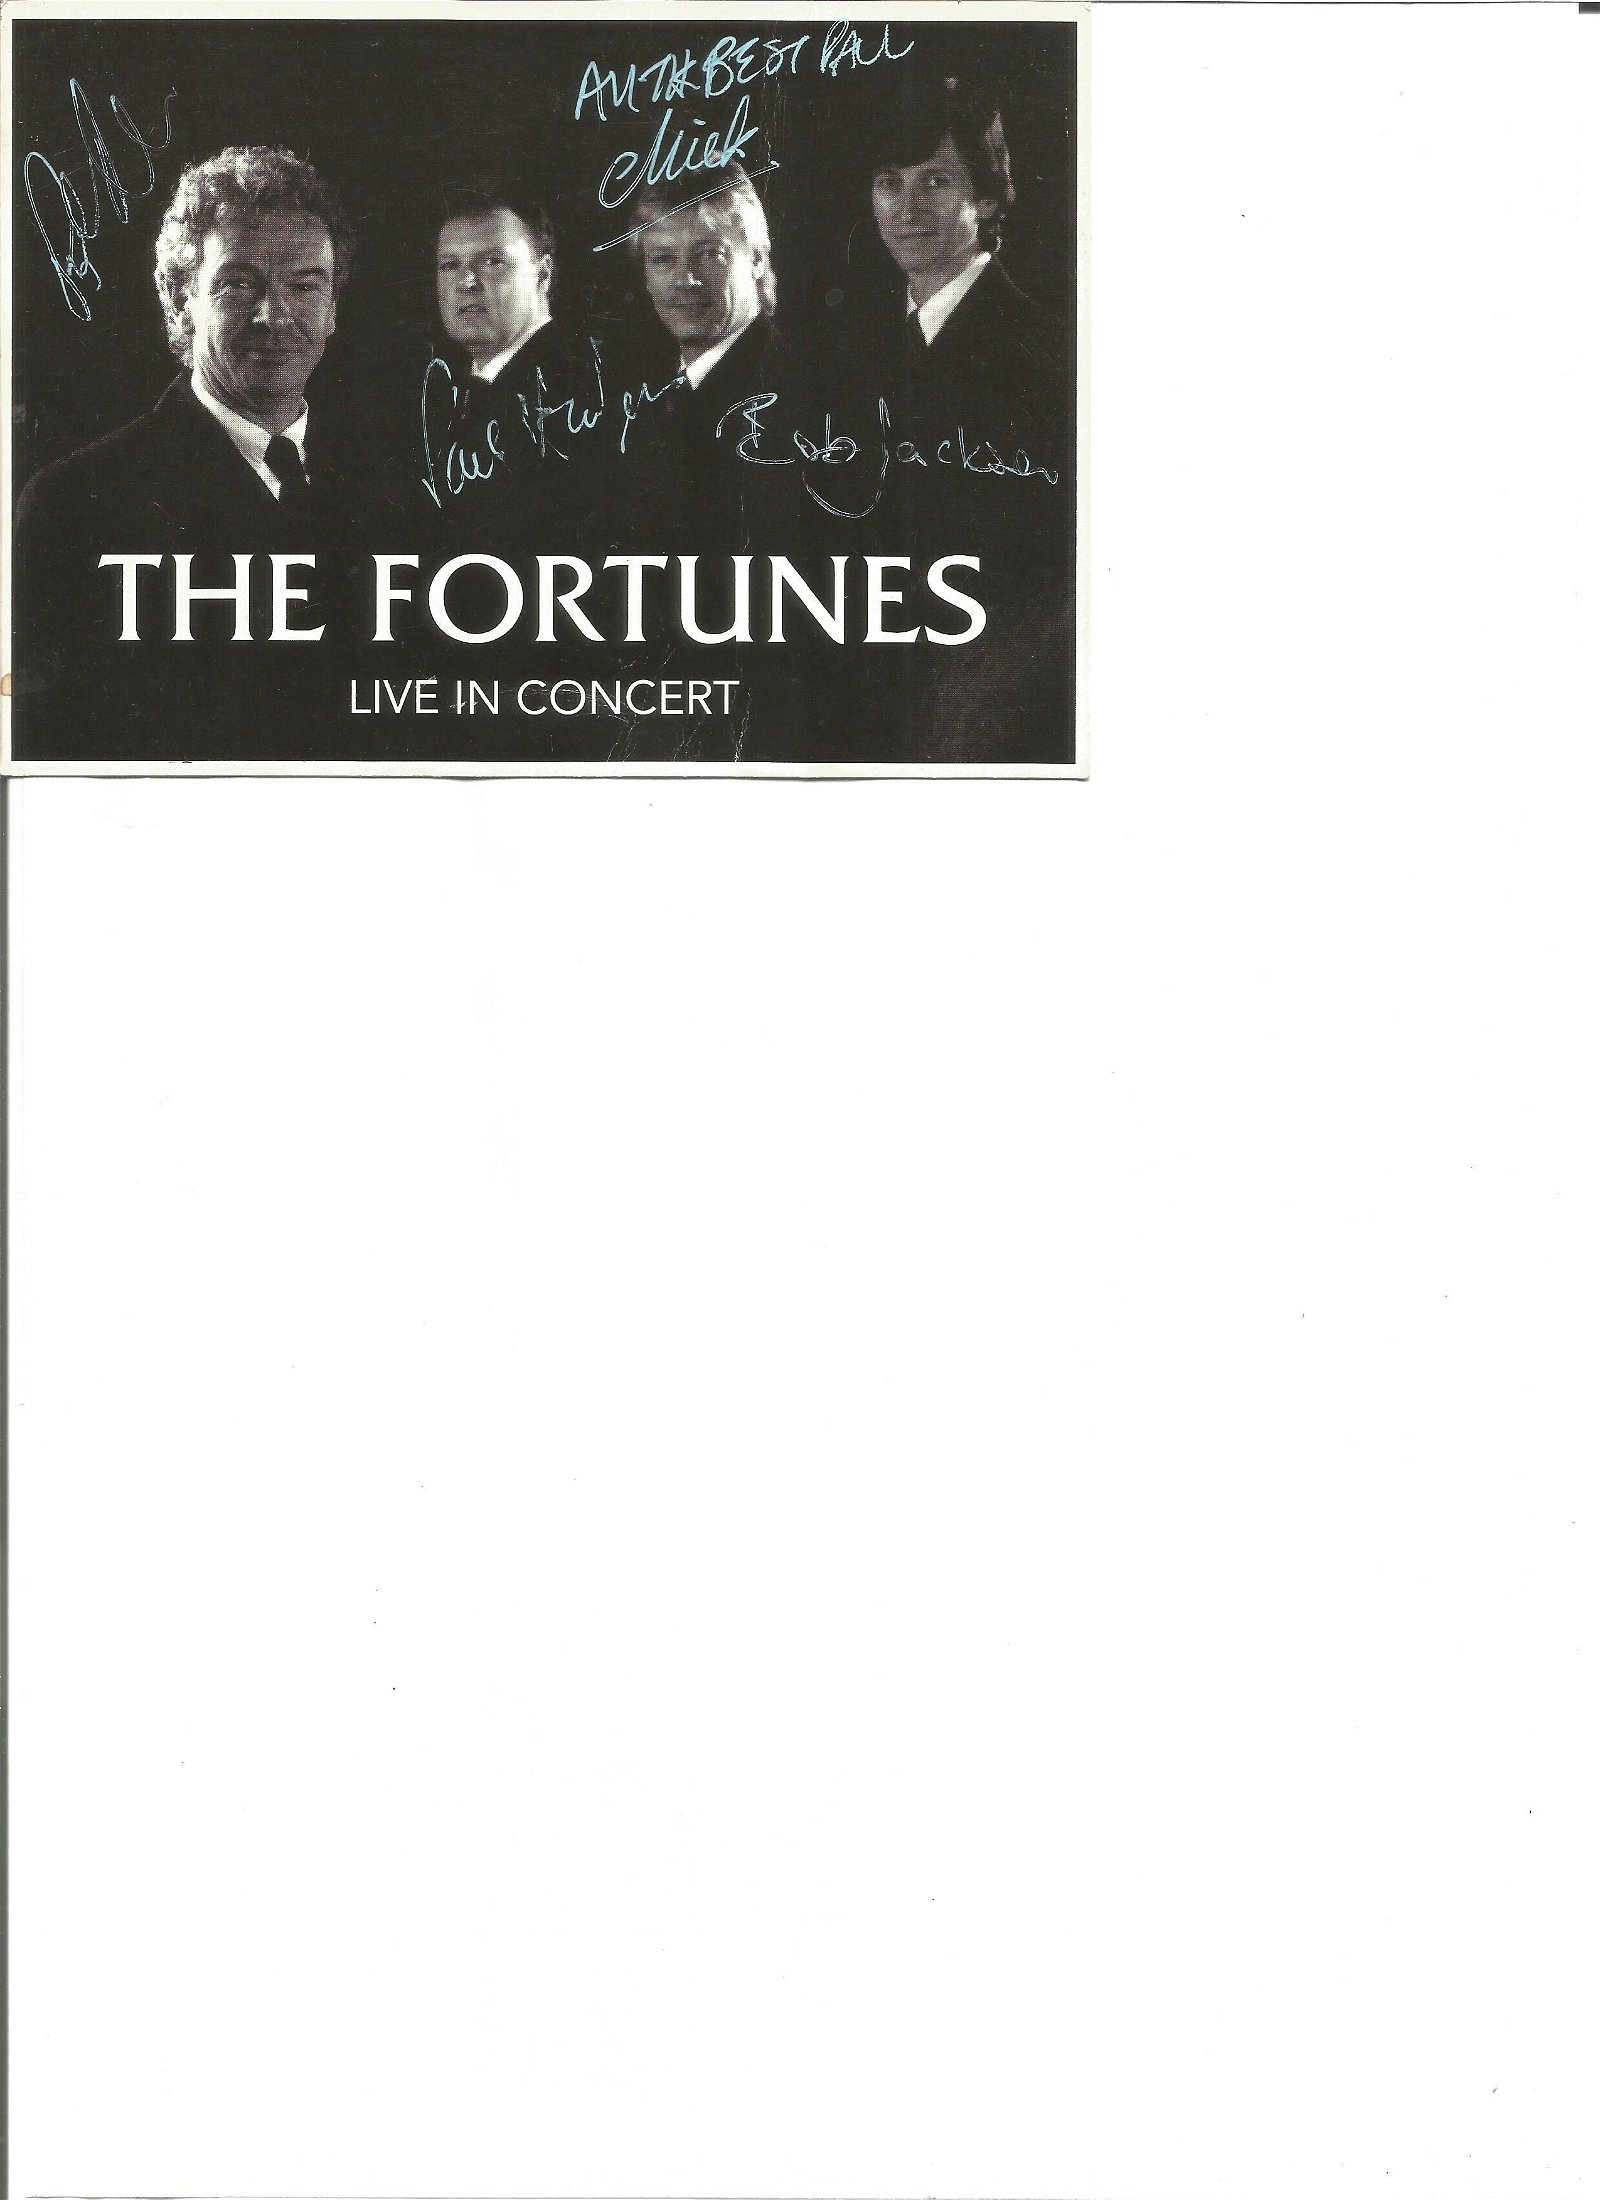 The Fortunes signed promotional card. Good Condition.